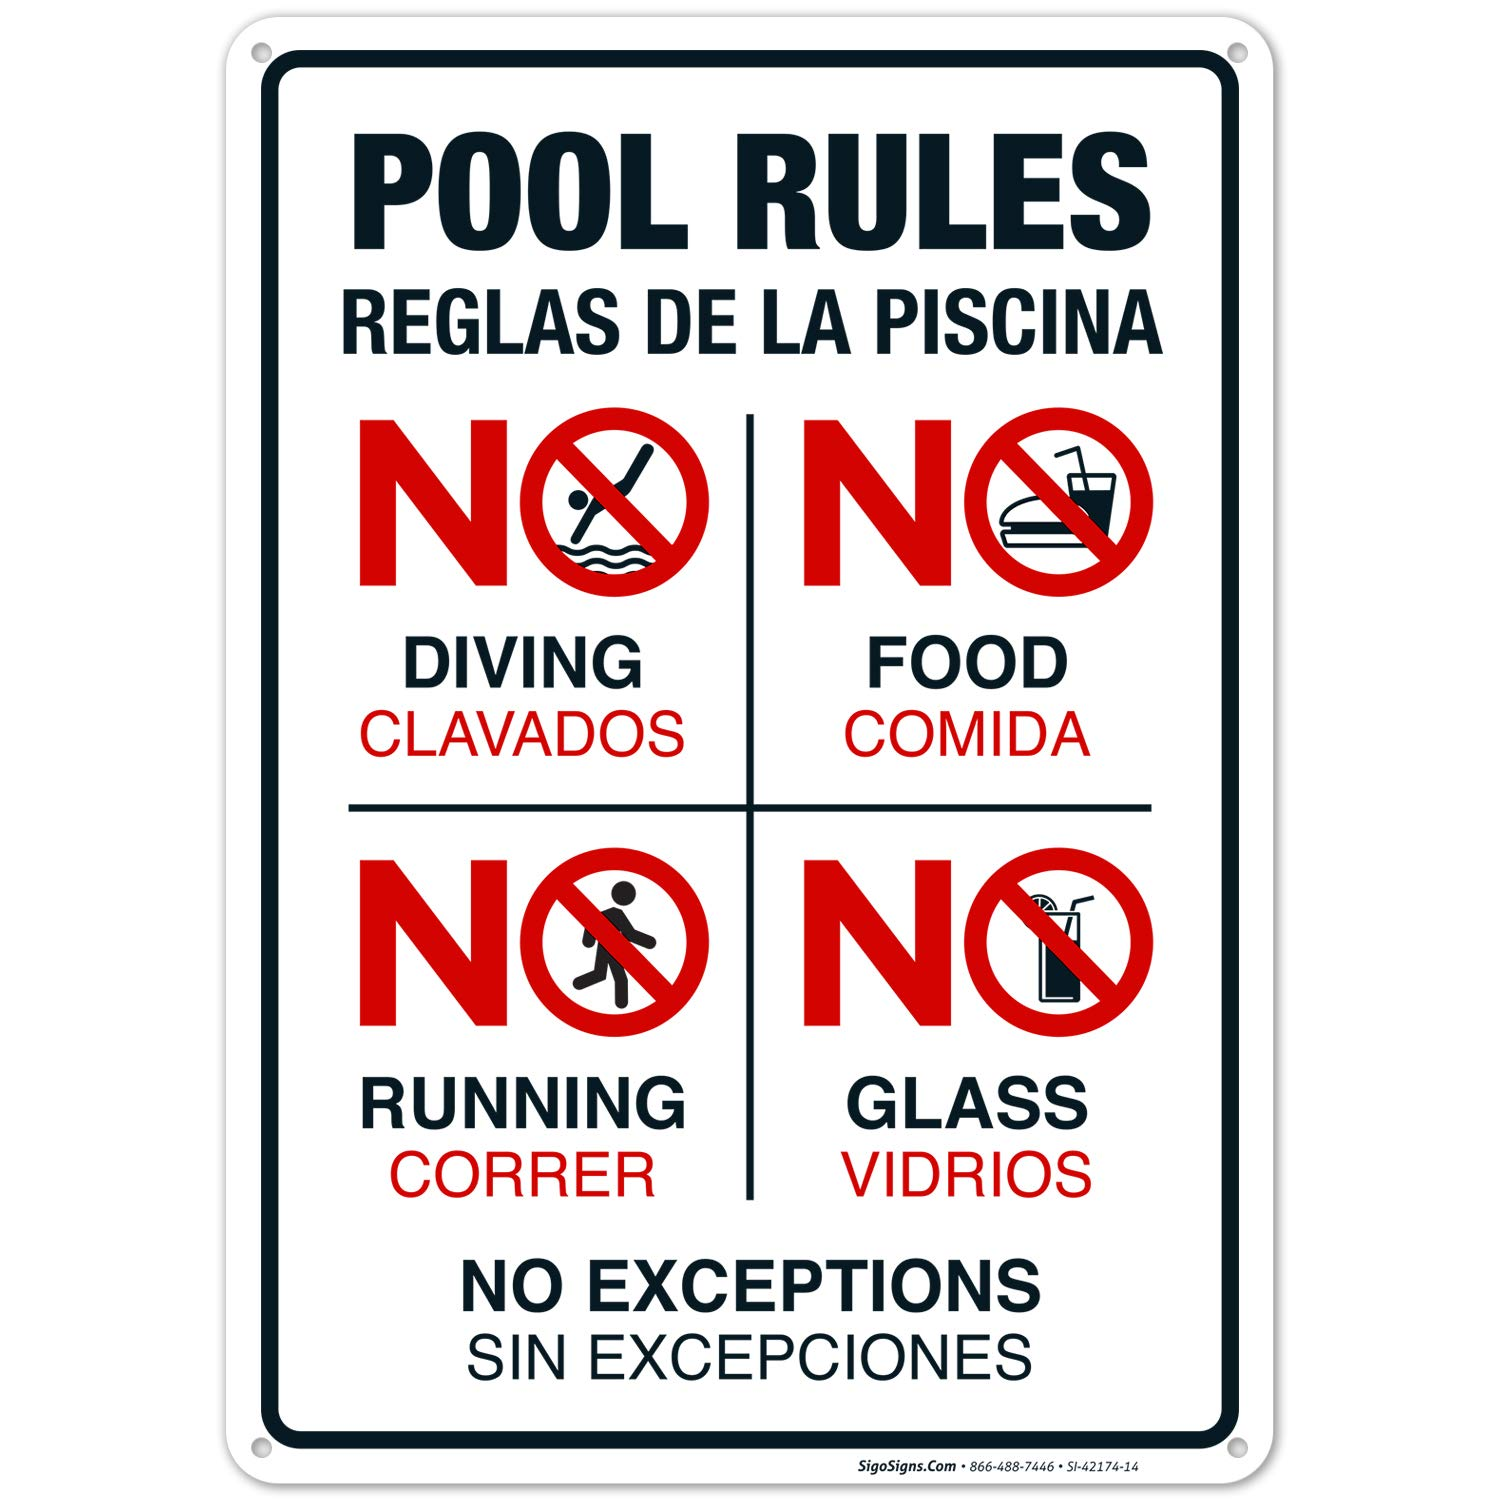 Pool Rules Sign, No Diving No Running No Food No Glass, Bilingual English and Spanish, 10x14 Rust Free Aluminum, Weather/Fade Resistant, Easy Mounting, Indoor/Outdoor Use, Made in USA by SIGO SIGNS